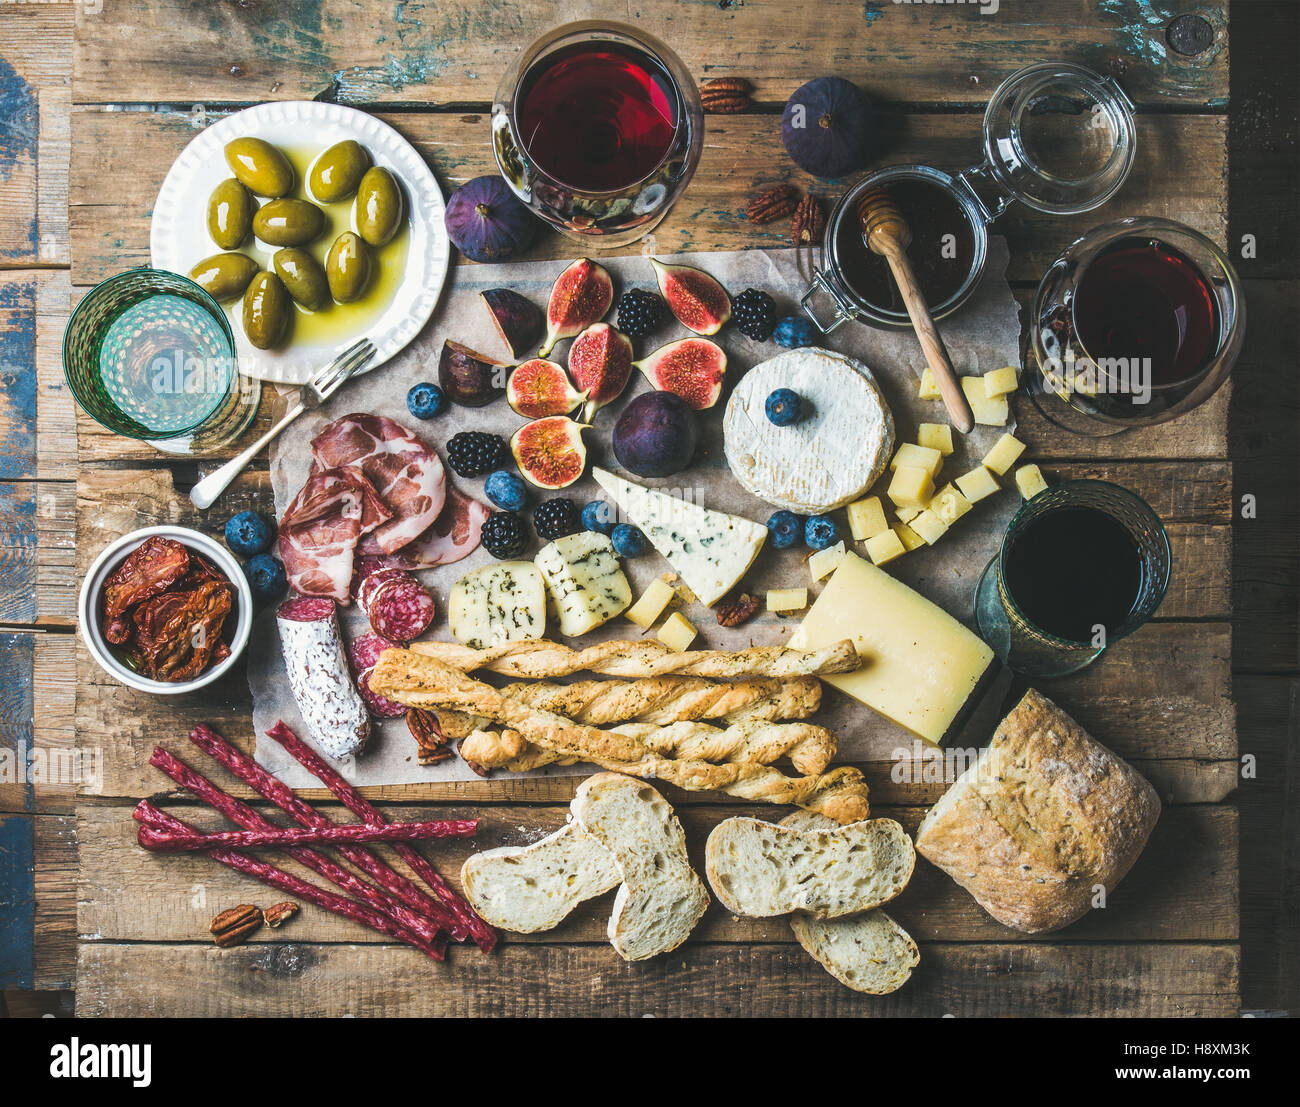 Wine and snack set with wines, meat, bread, olives, fruits - Stock Image